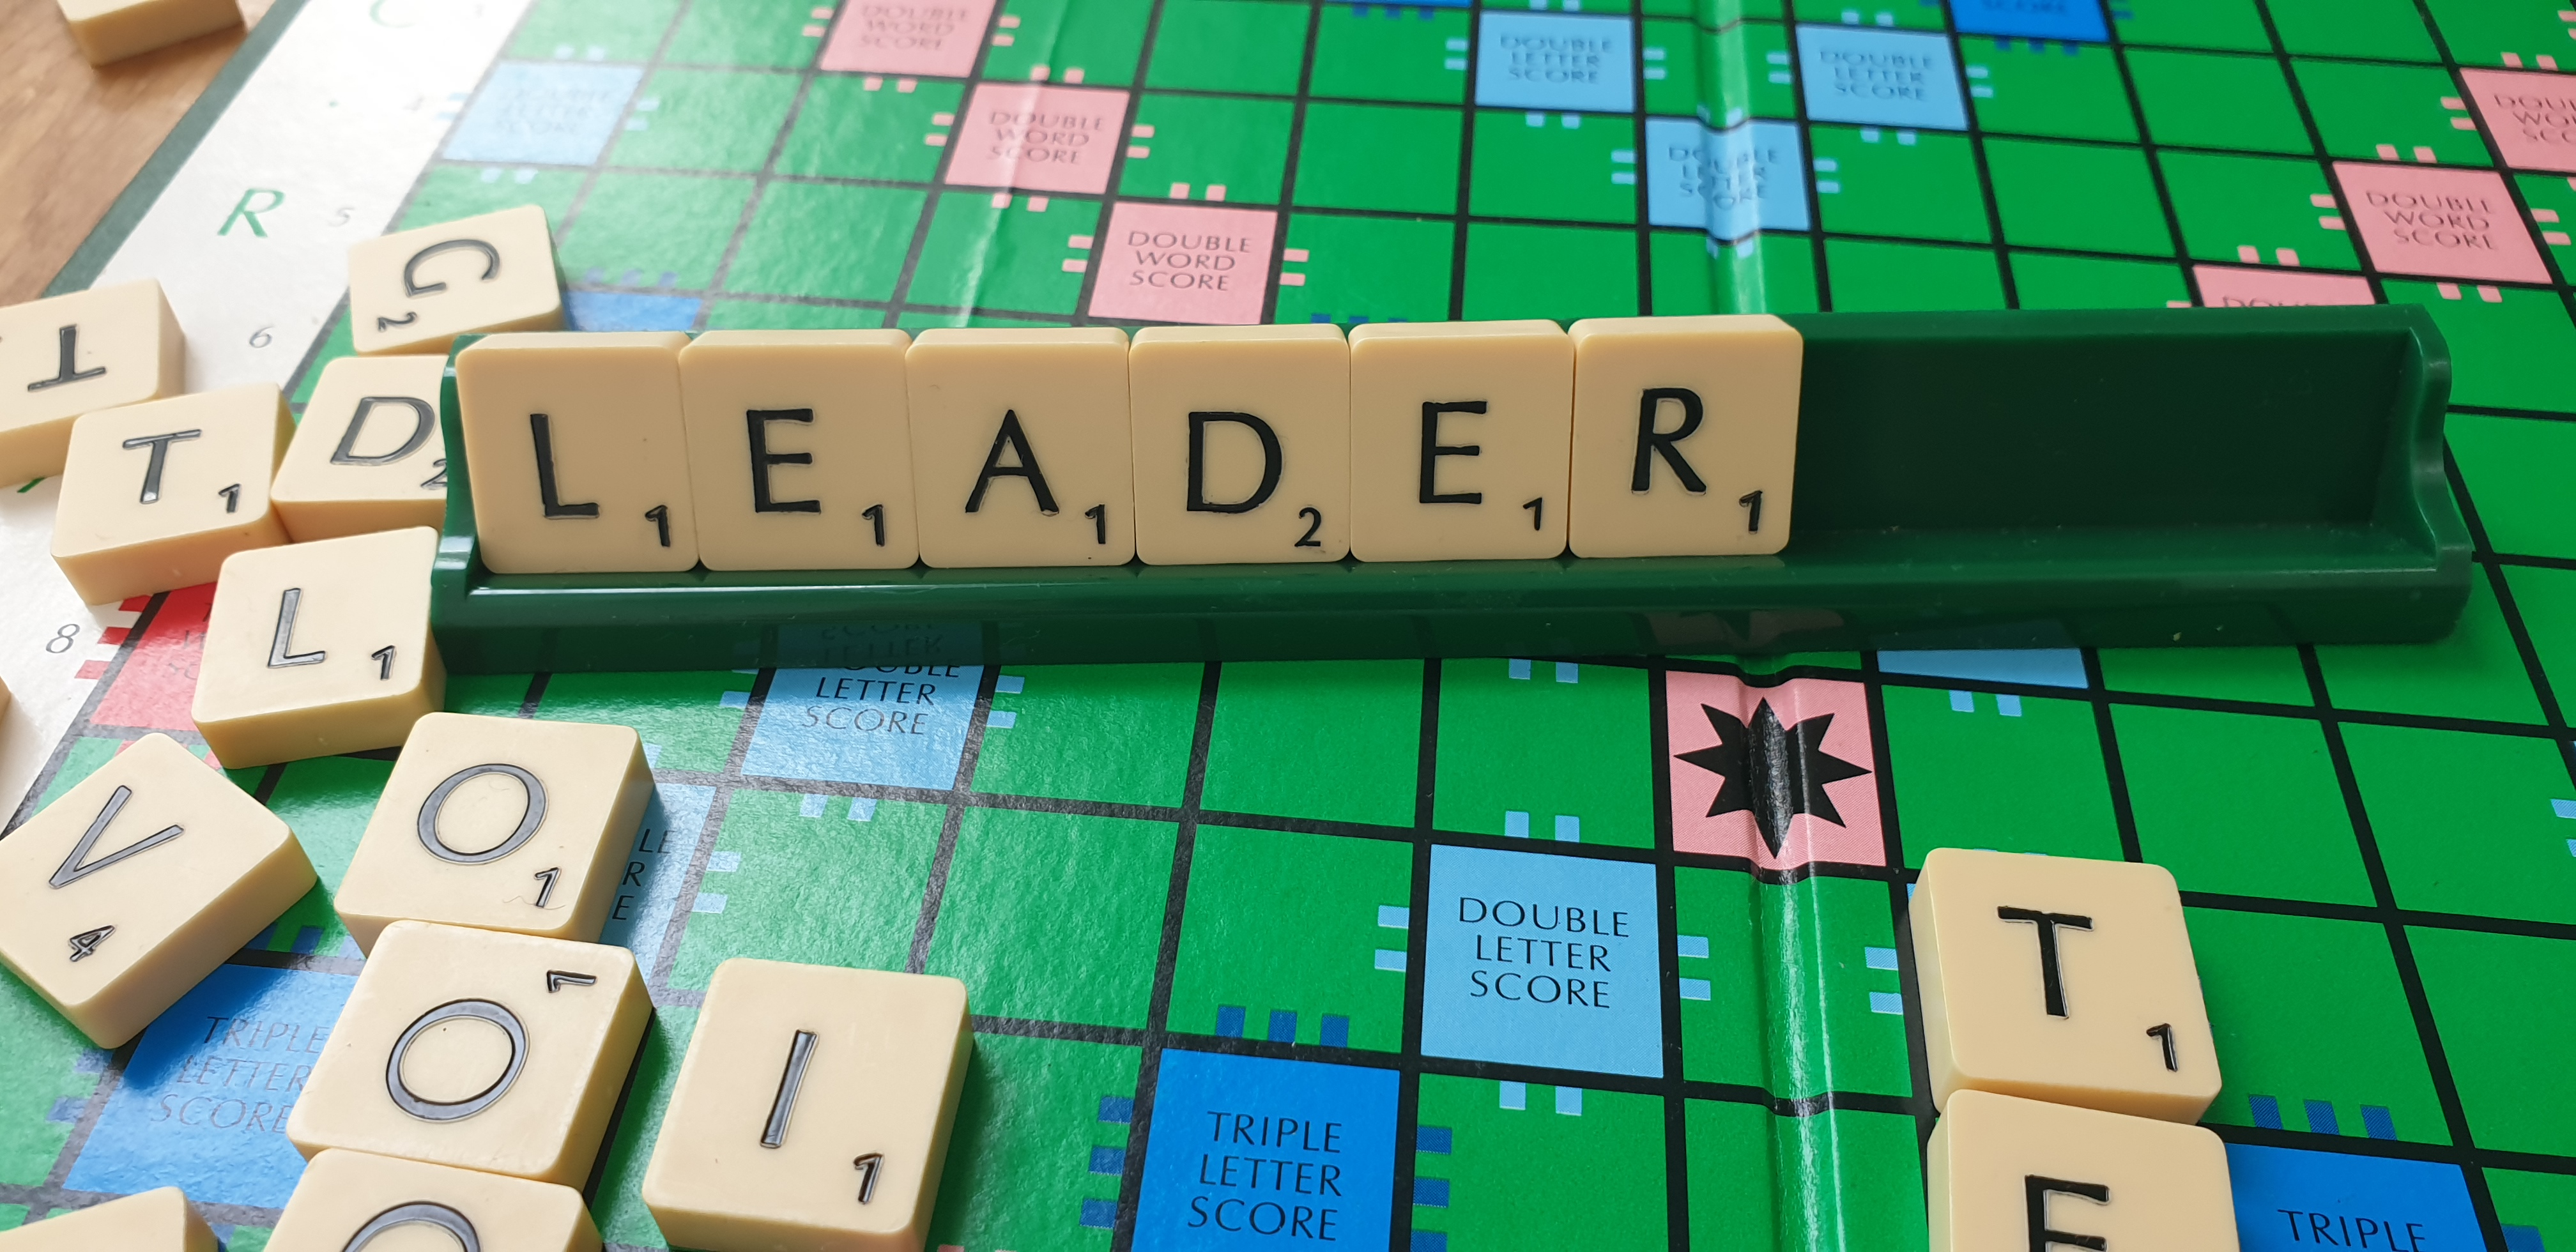 Scrabble board with the word leader splet out using scrabble tiles